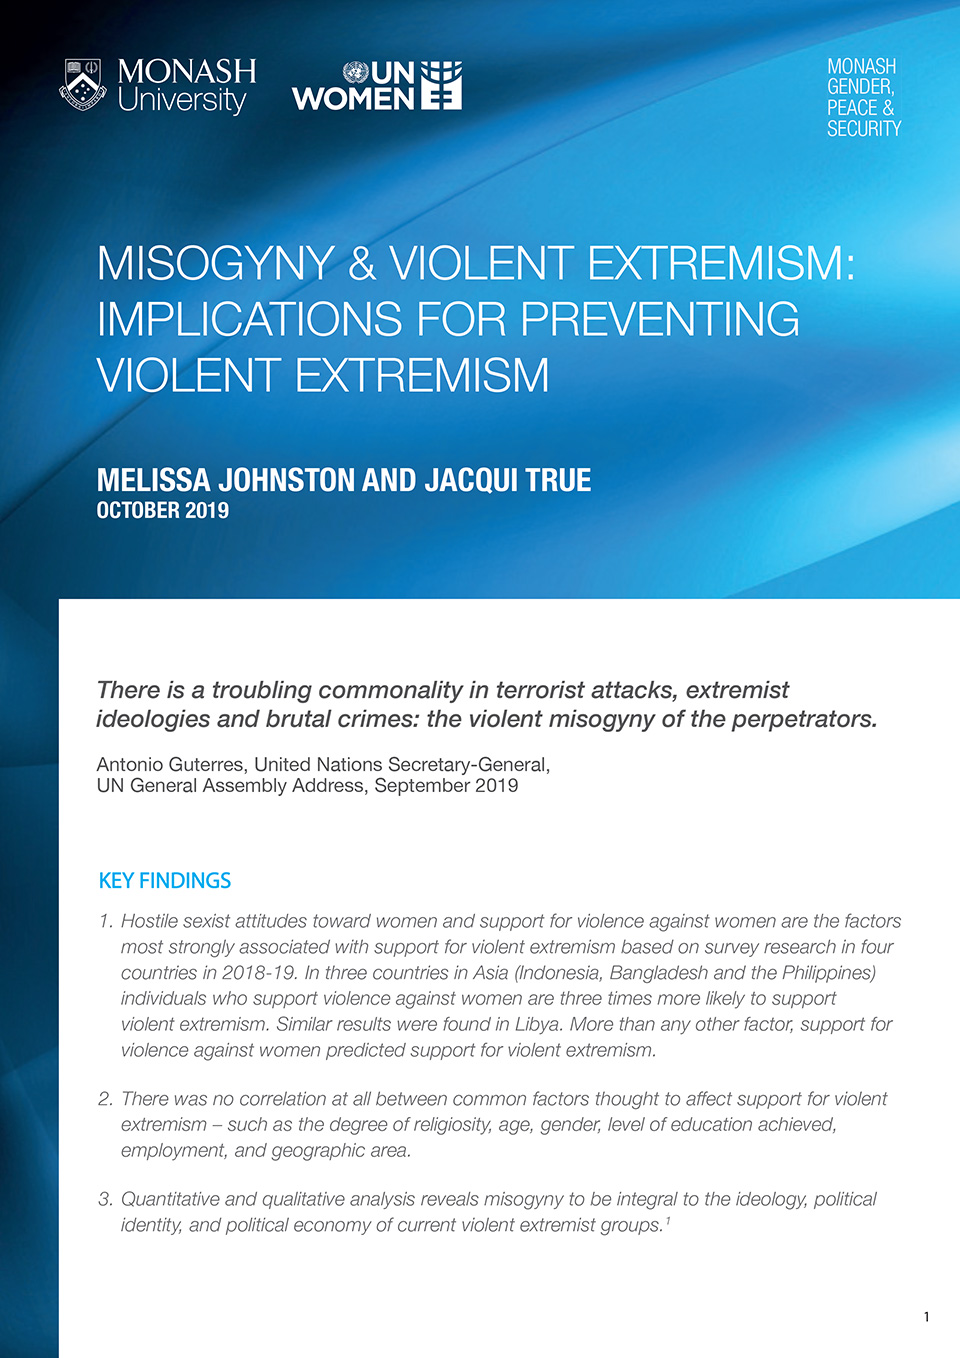 Misogyny & Violent Extremism: Implications for Preventing Violent Extremism